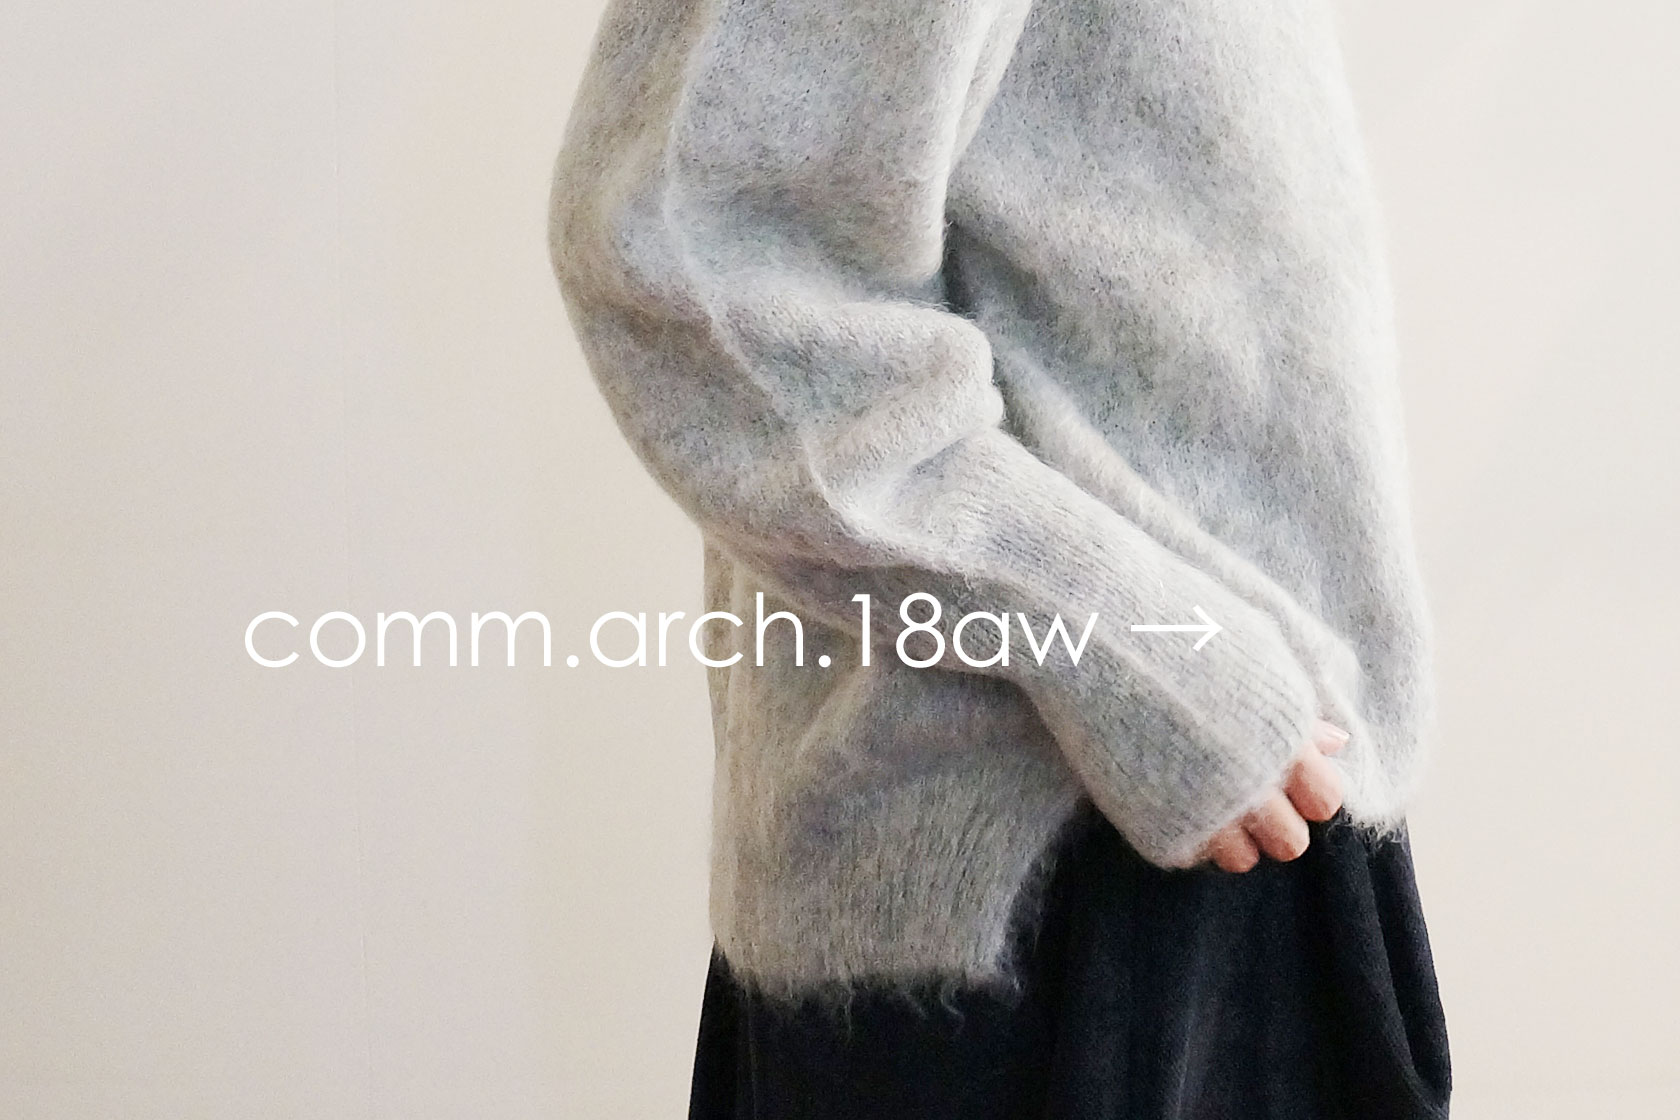 comm.arch.18AW